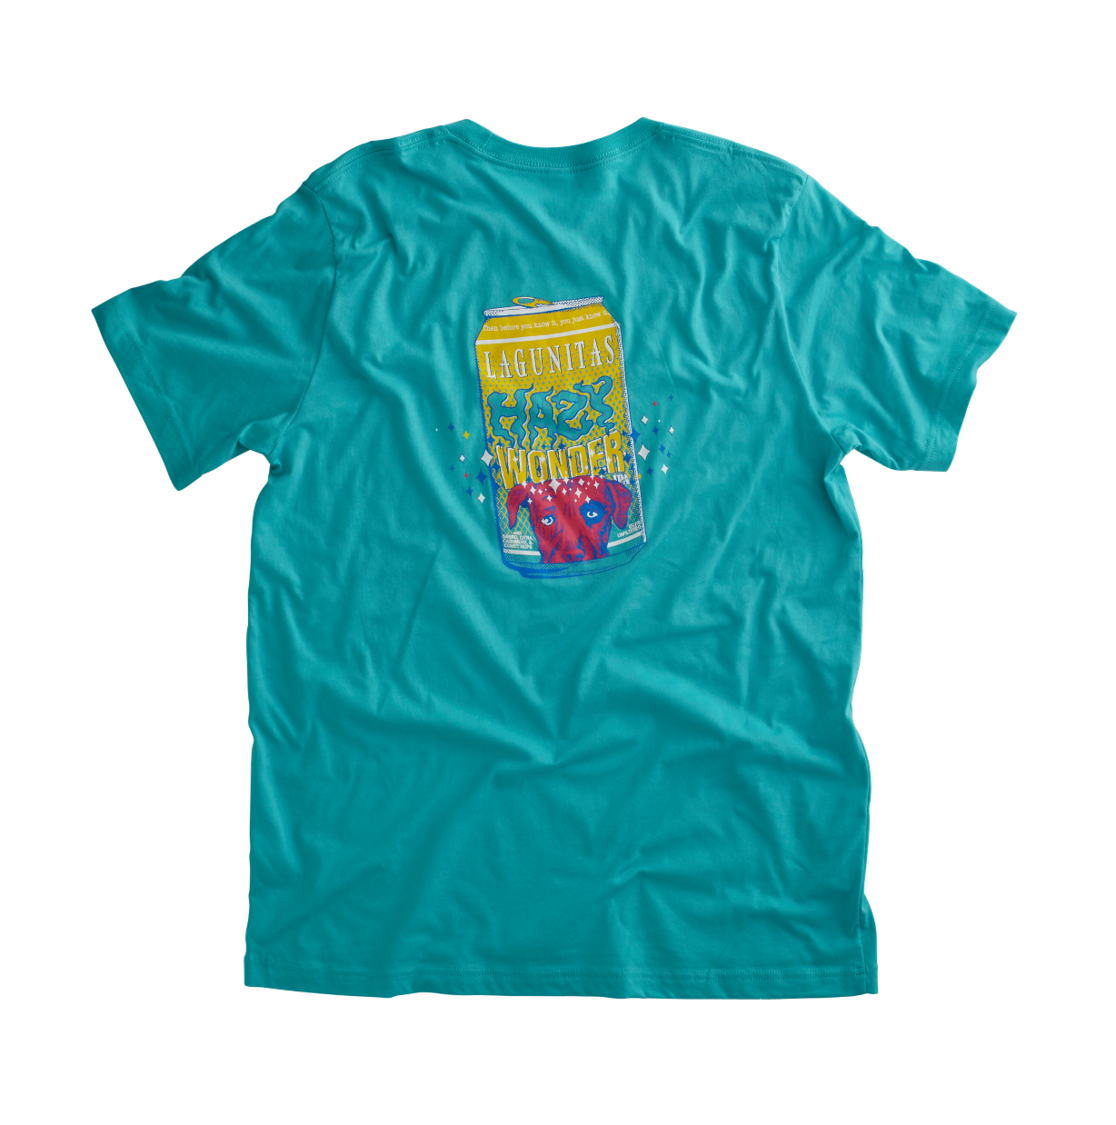 This tee's light and bright (just like the beer) but way, way more wearable. The shade of teal is so tasty, we can only describe it as ✨Wondrous✨.  Color: Teal  Material: 100% Cotton